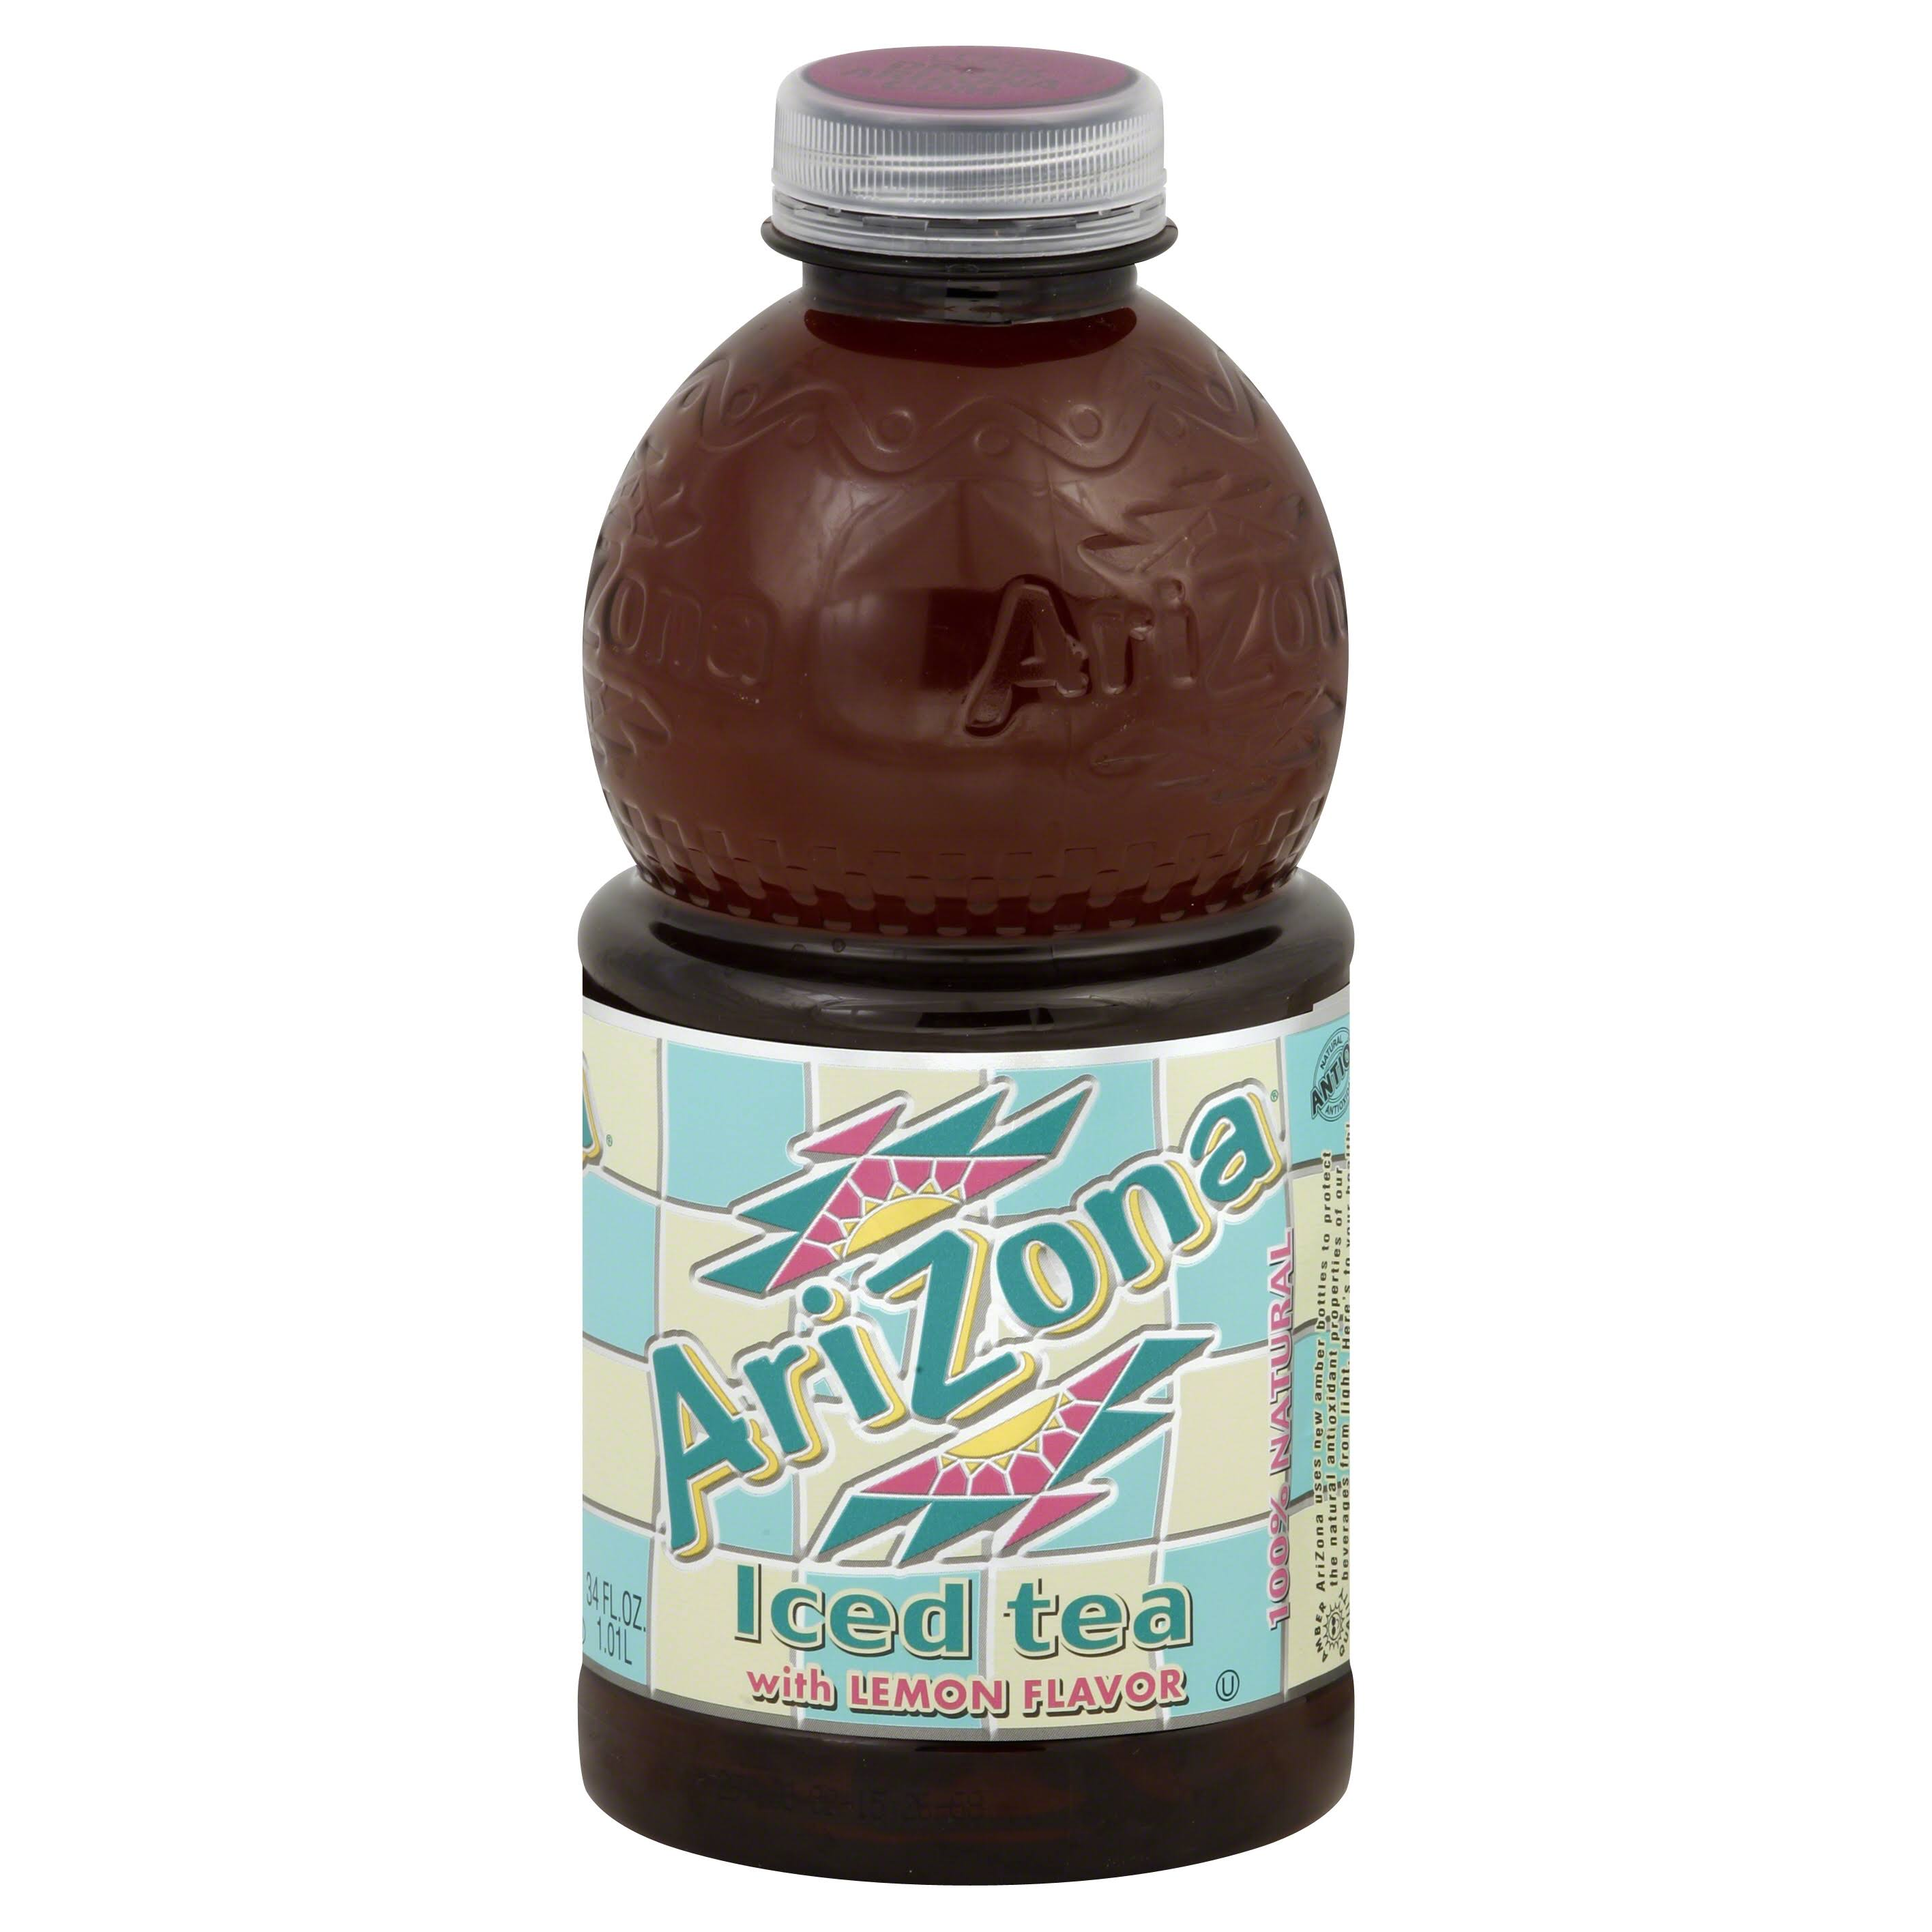 Arizona Iced Tea, with Lemon Flavor - 34 fl oz